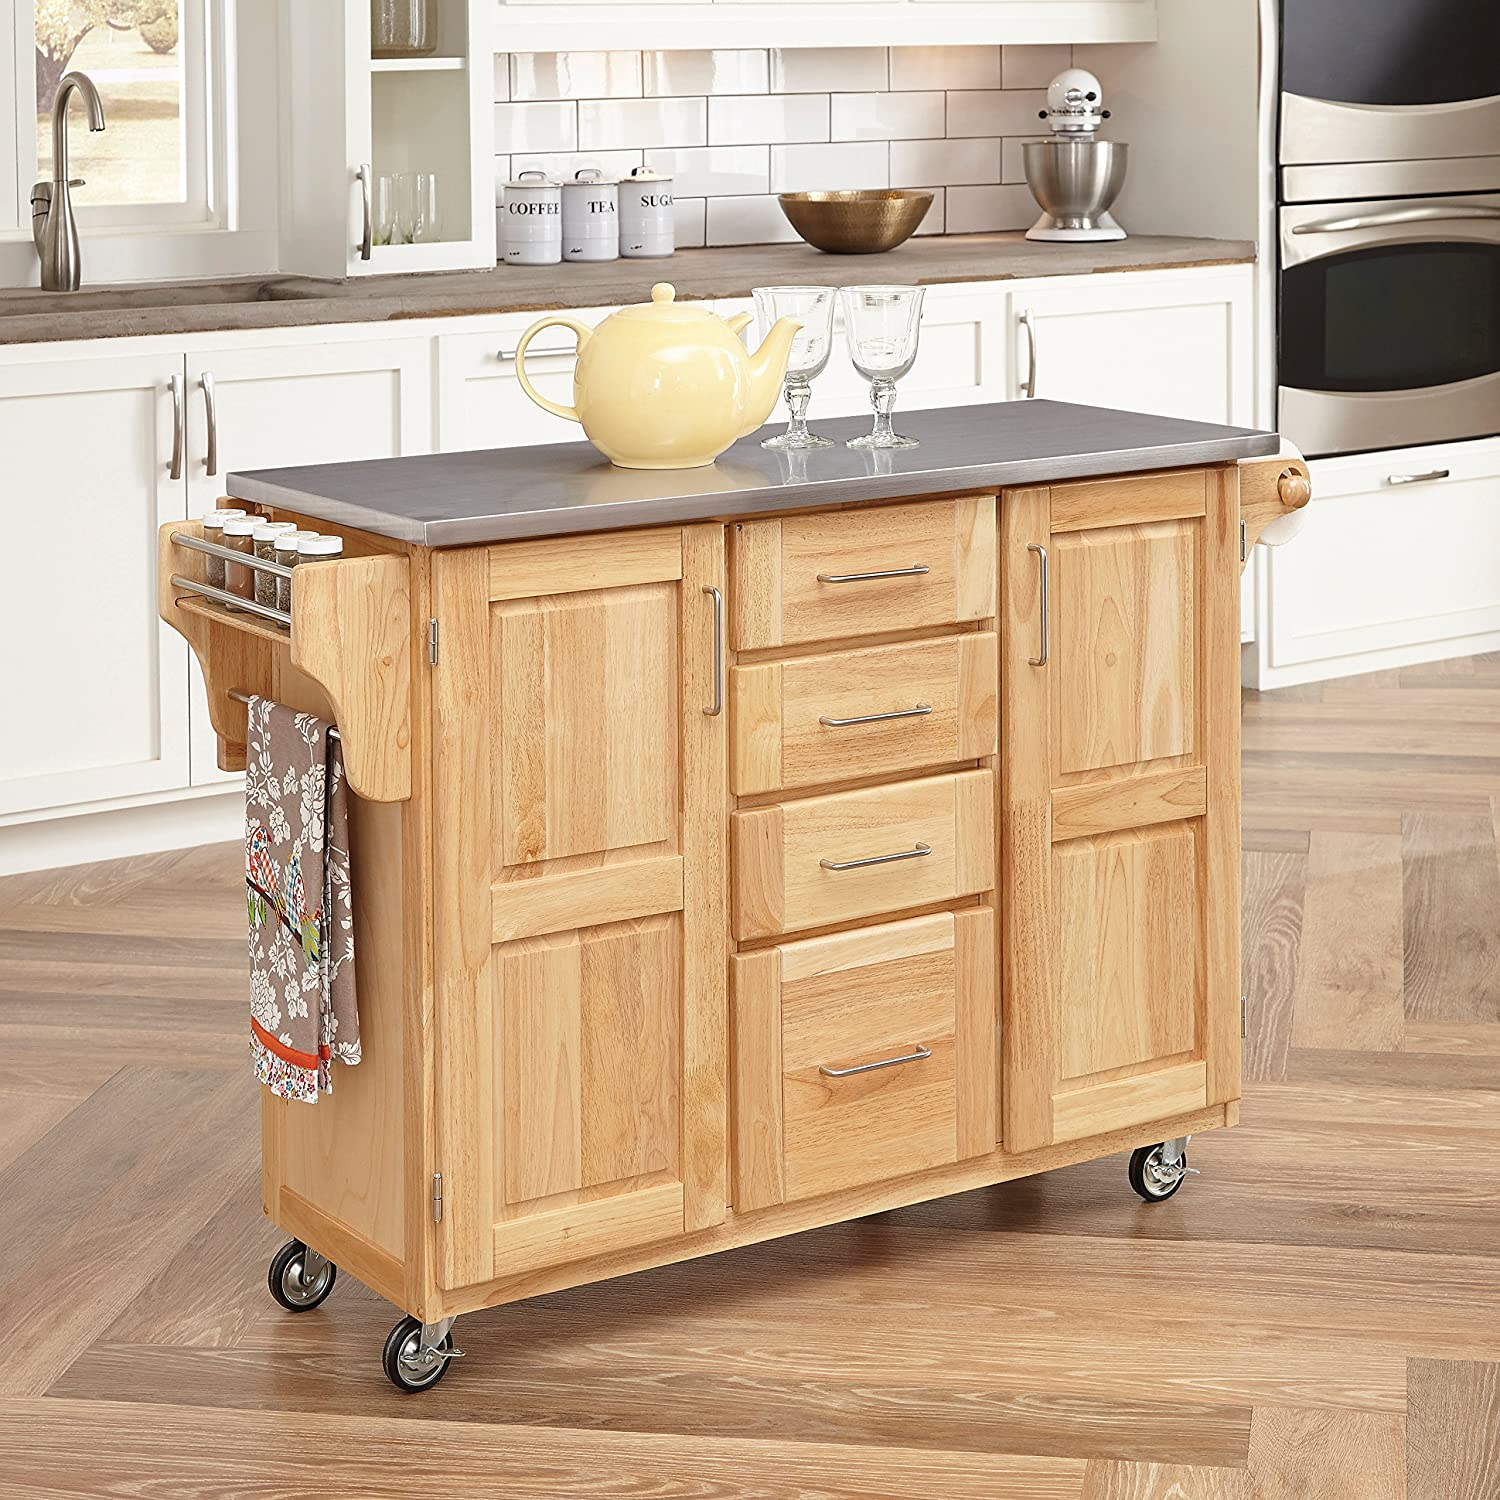 Awesome Amazon.com   Home Styles 5086 95 Stainless Steel Top Kitchen Cart With  Breakfast Bar, Natural Finish   Bar U0026 Serving Carts